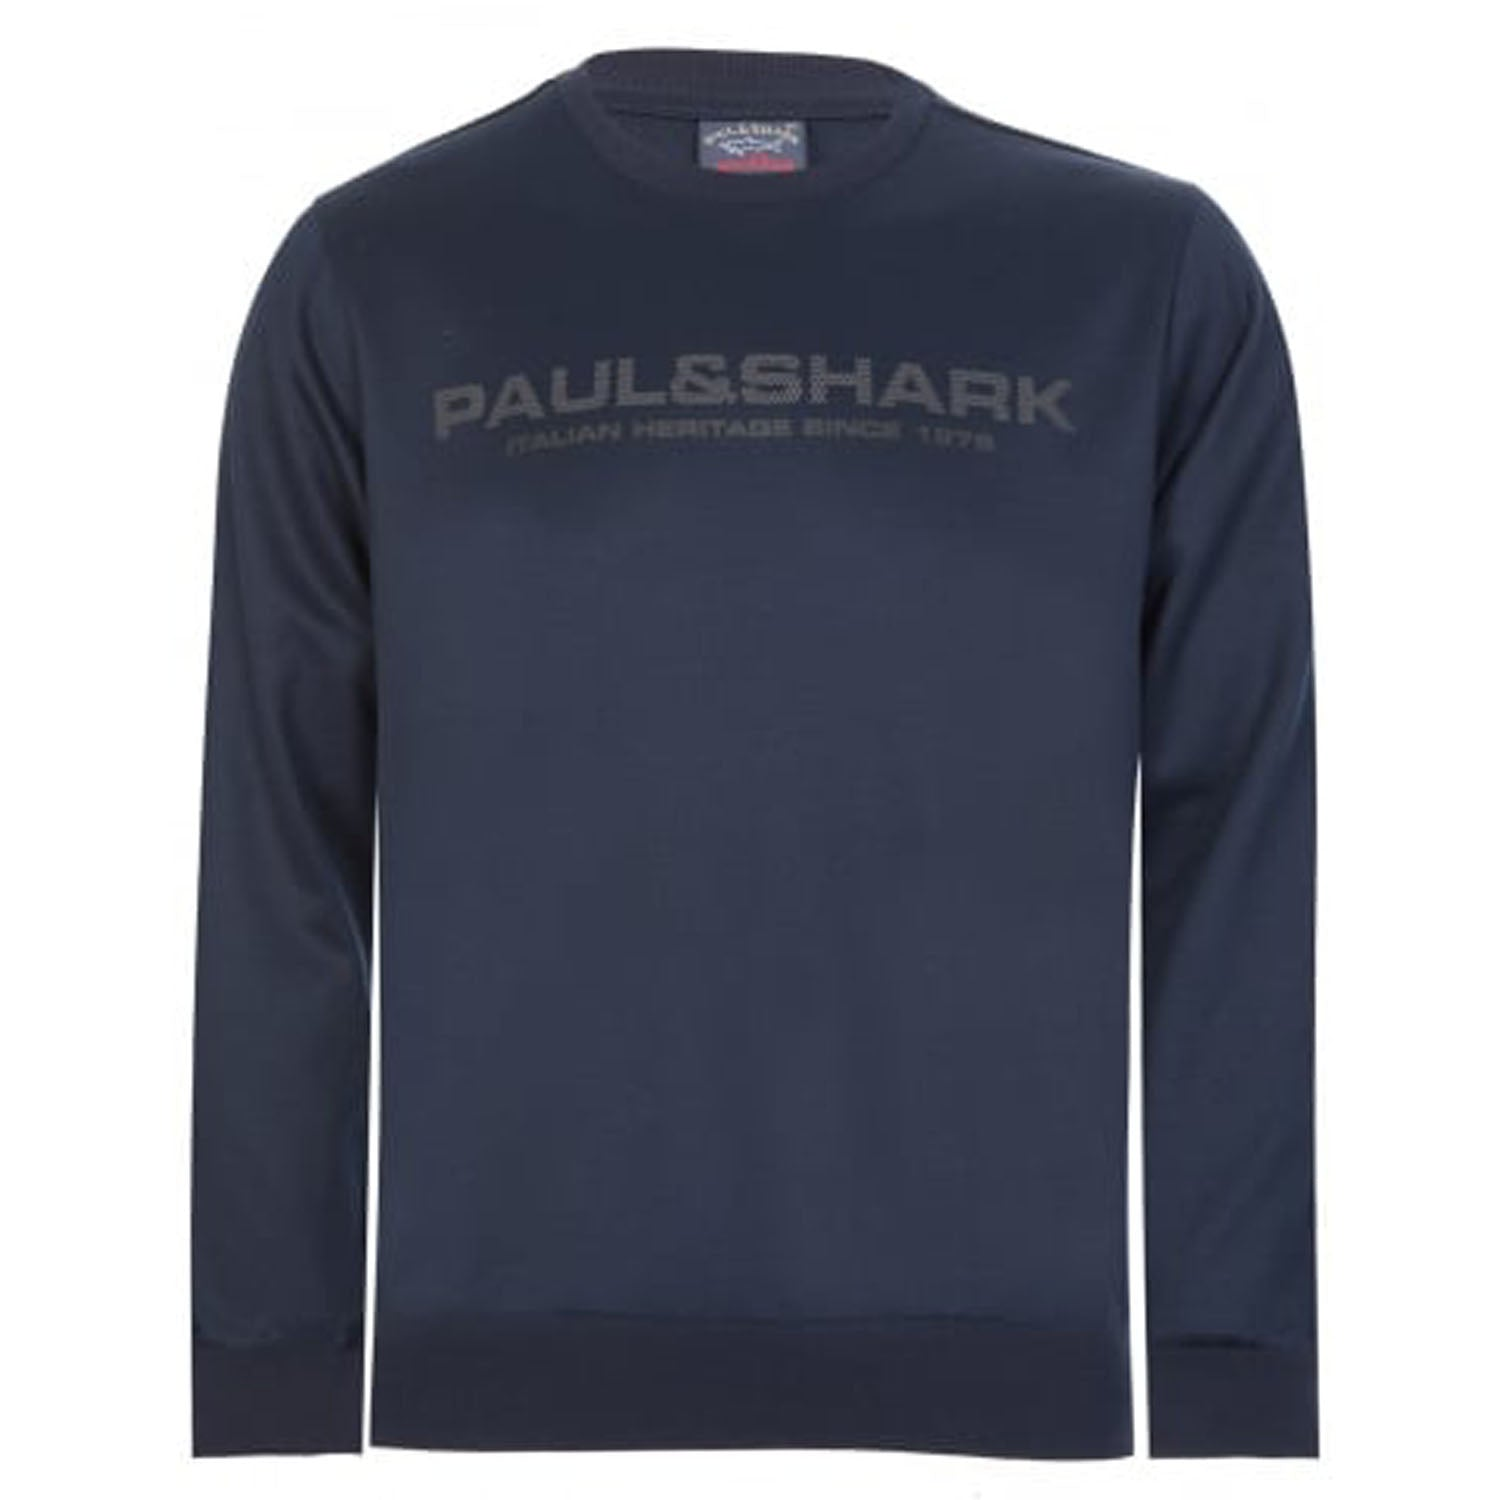 Paul & Shark Perforated Logo Sweatshirt